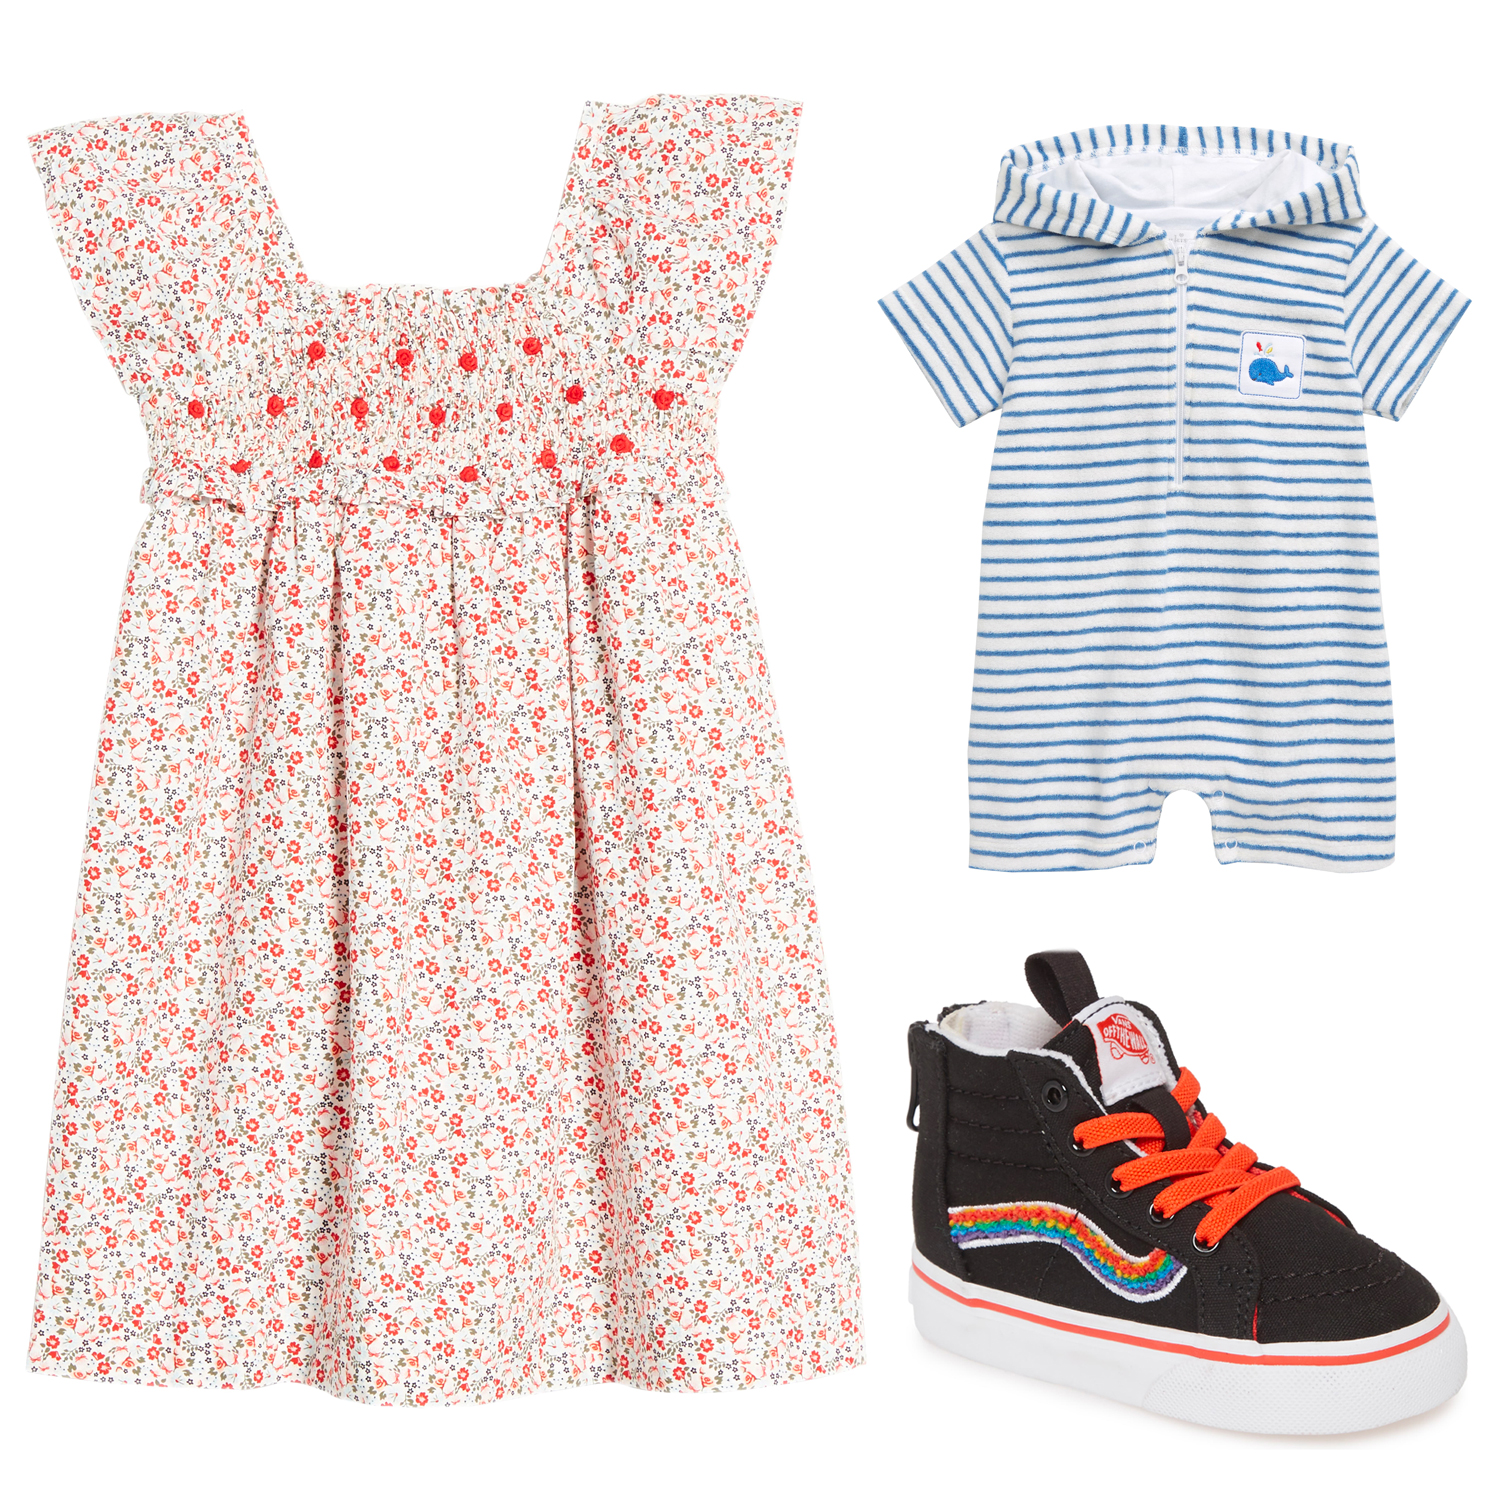 Nordstrom Kids Clothing Collage